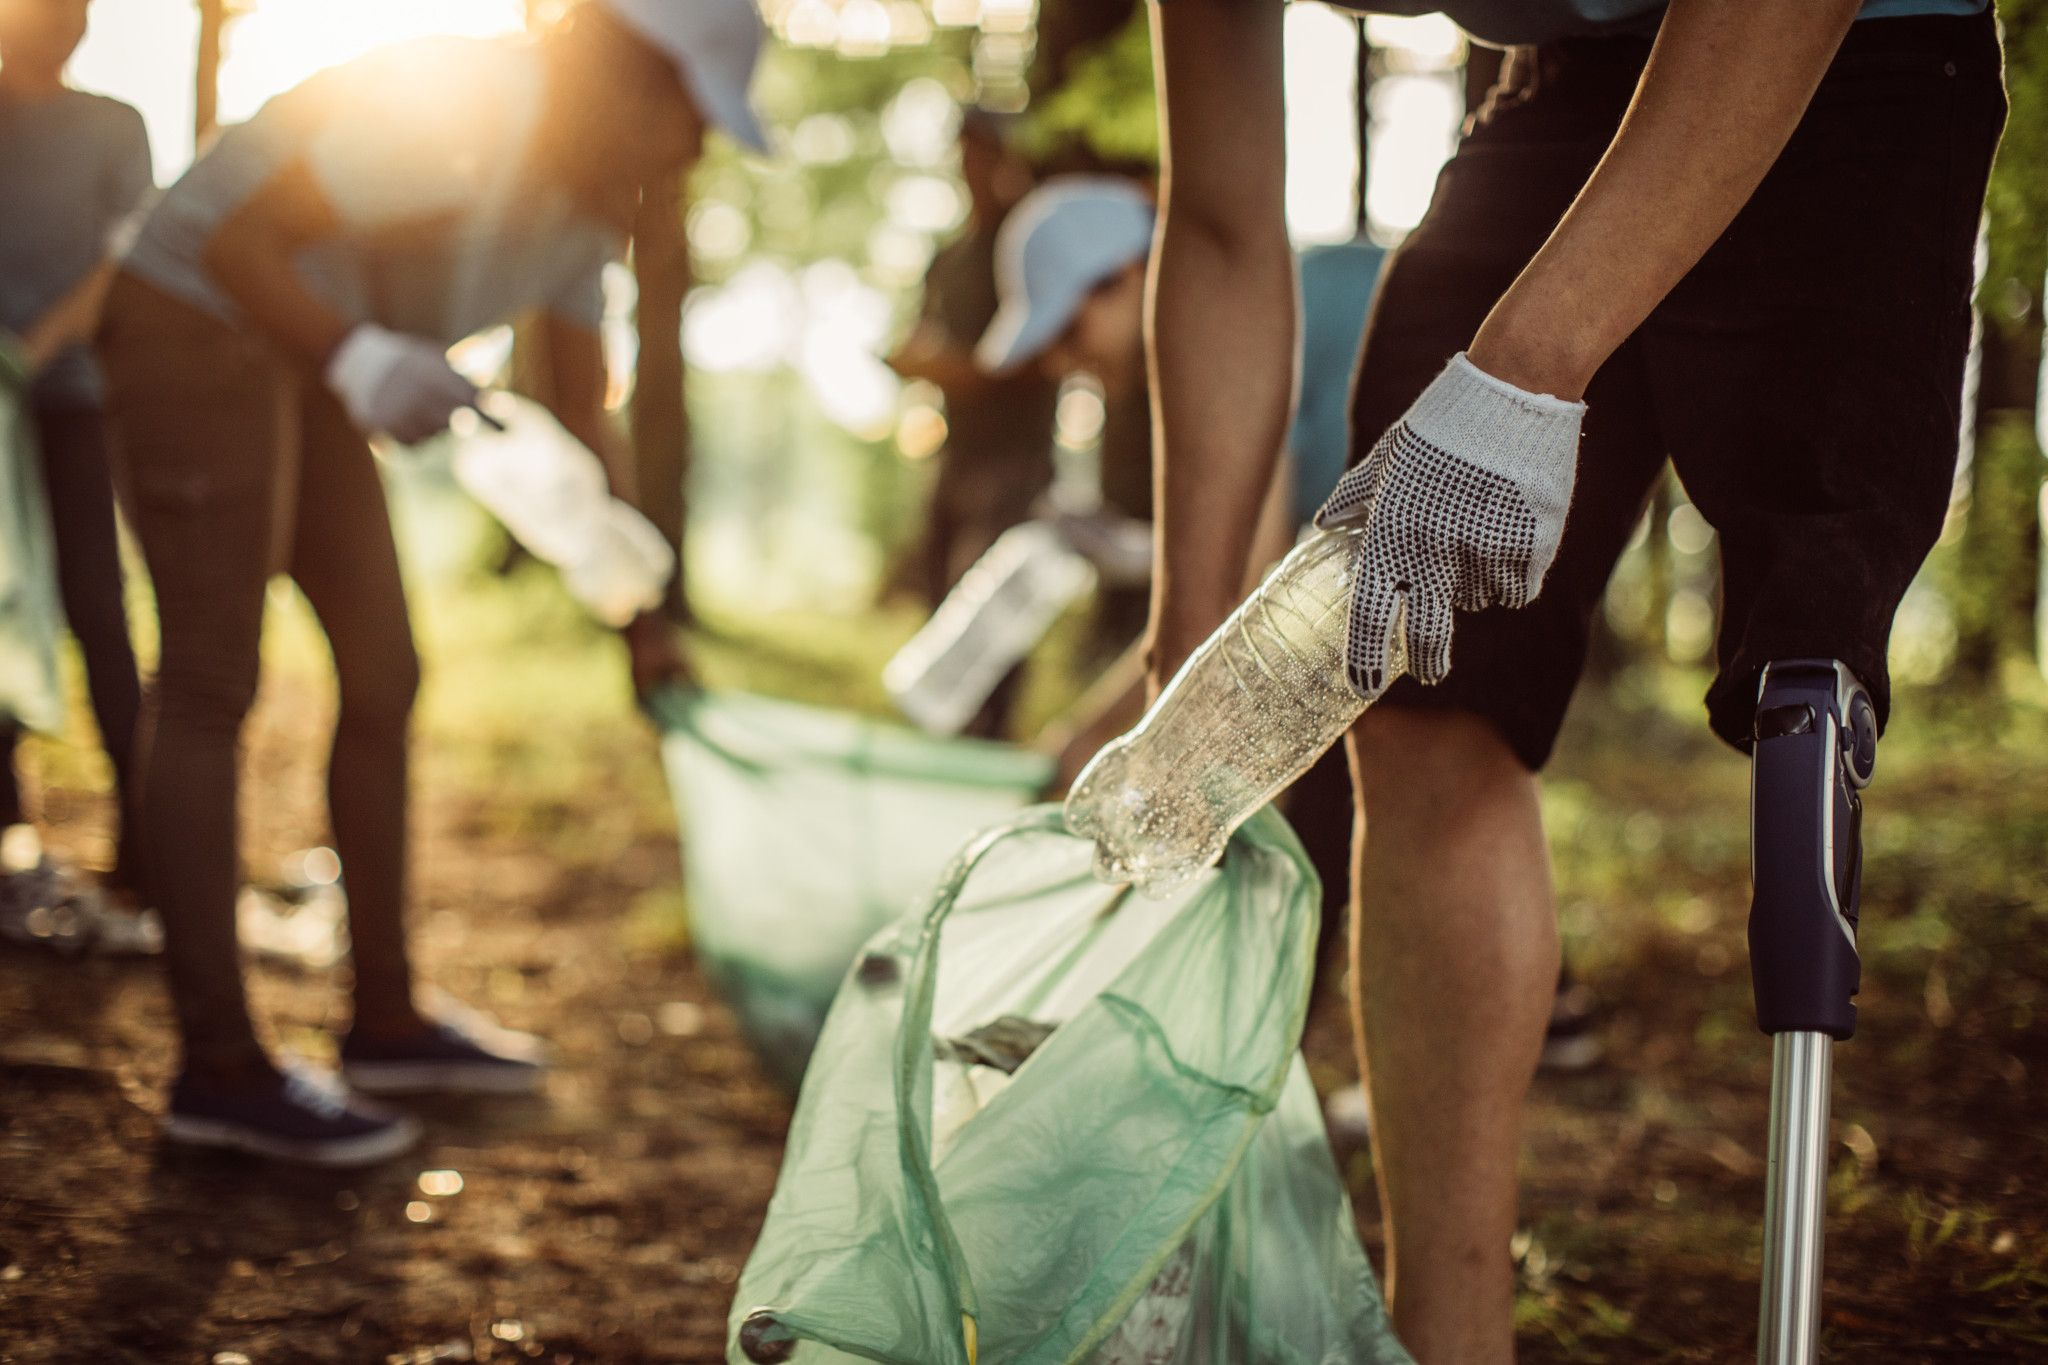 An image of volunteers picking up litter from a park.